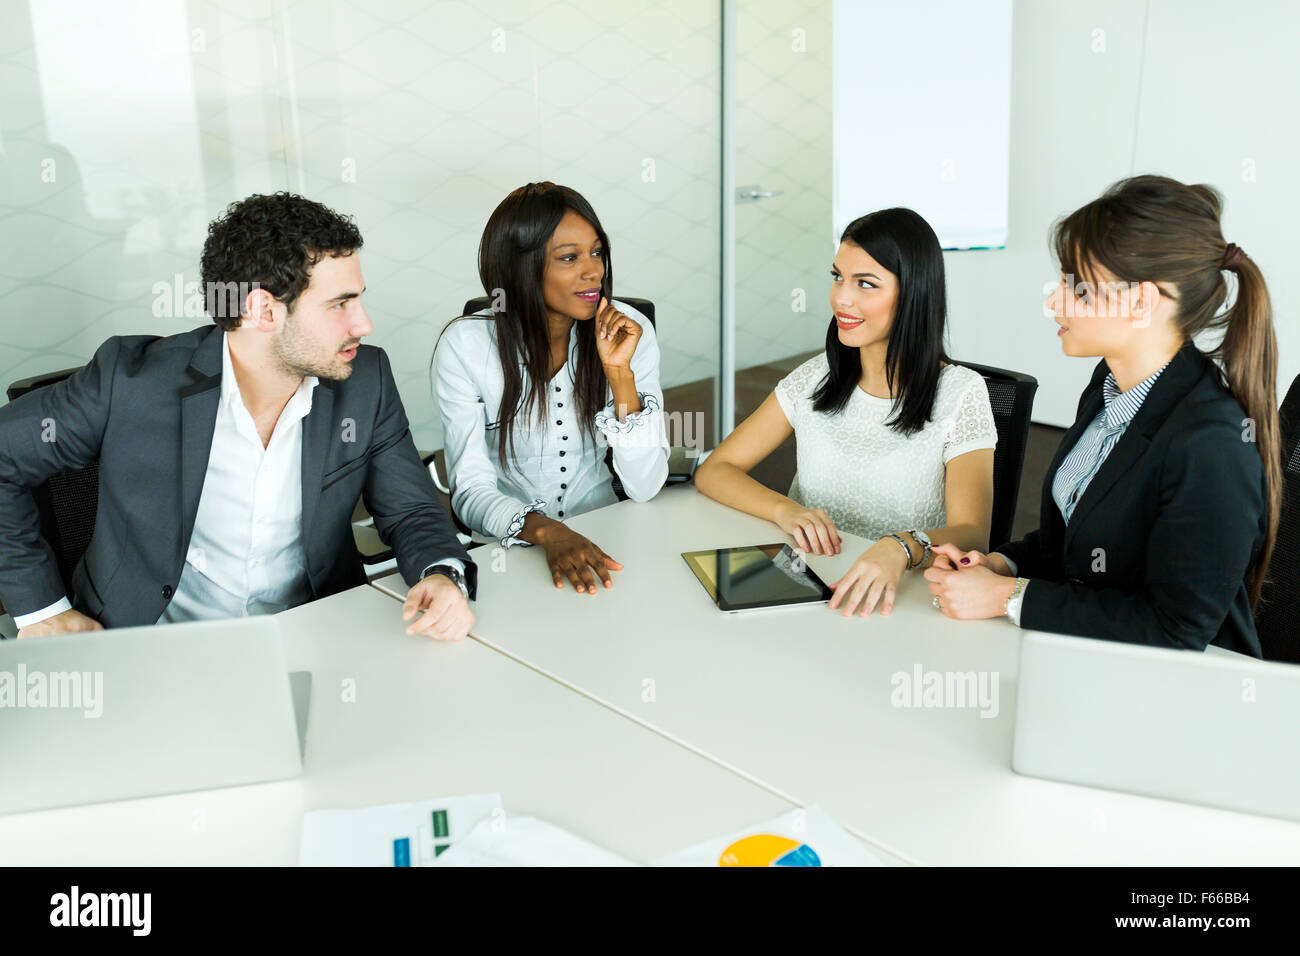 Business talk while sitting at a table and analyzing  results - Stock Image